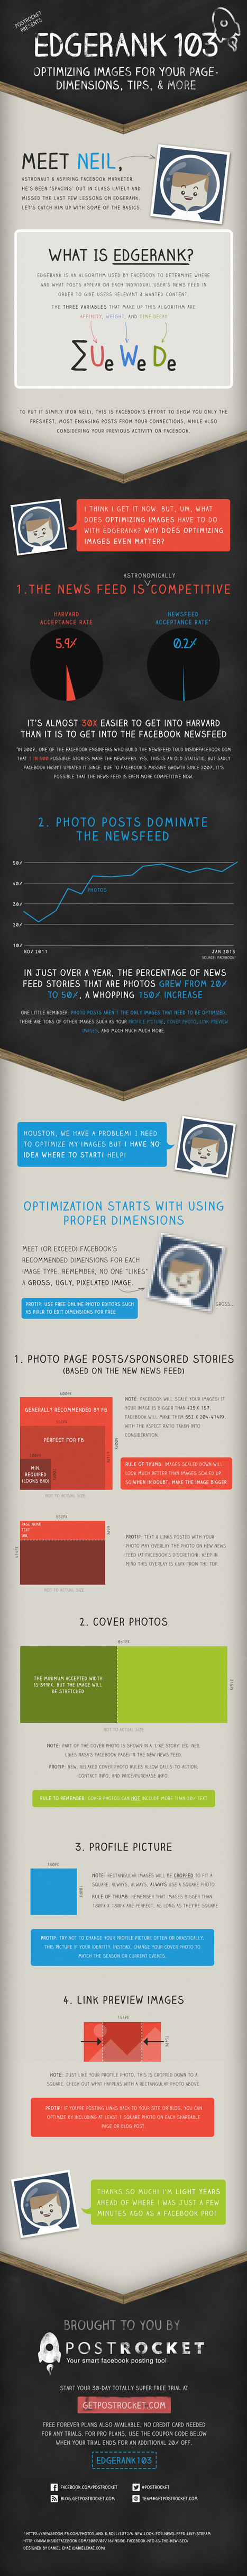 Infographic: Best Practices for Optimizing Facebook Photos | Social Media and the economy | Scoop.it